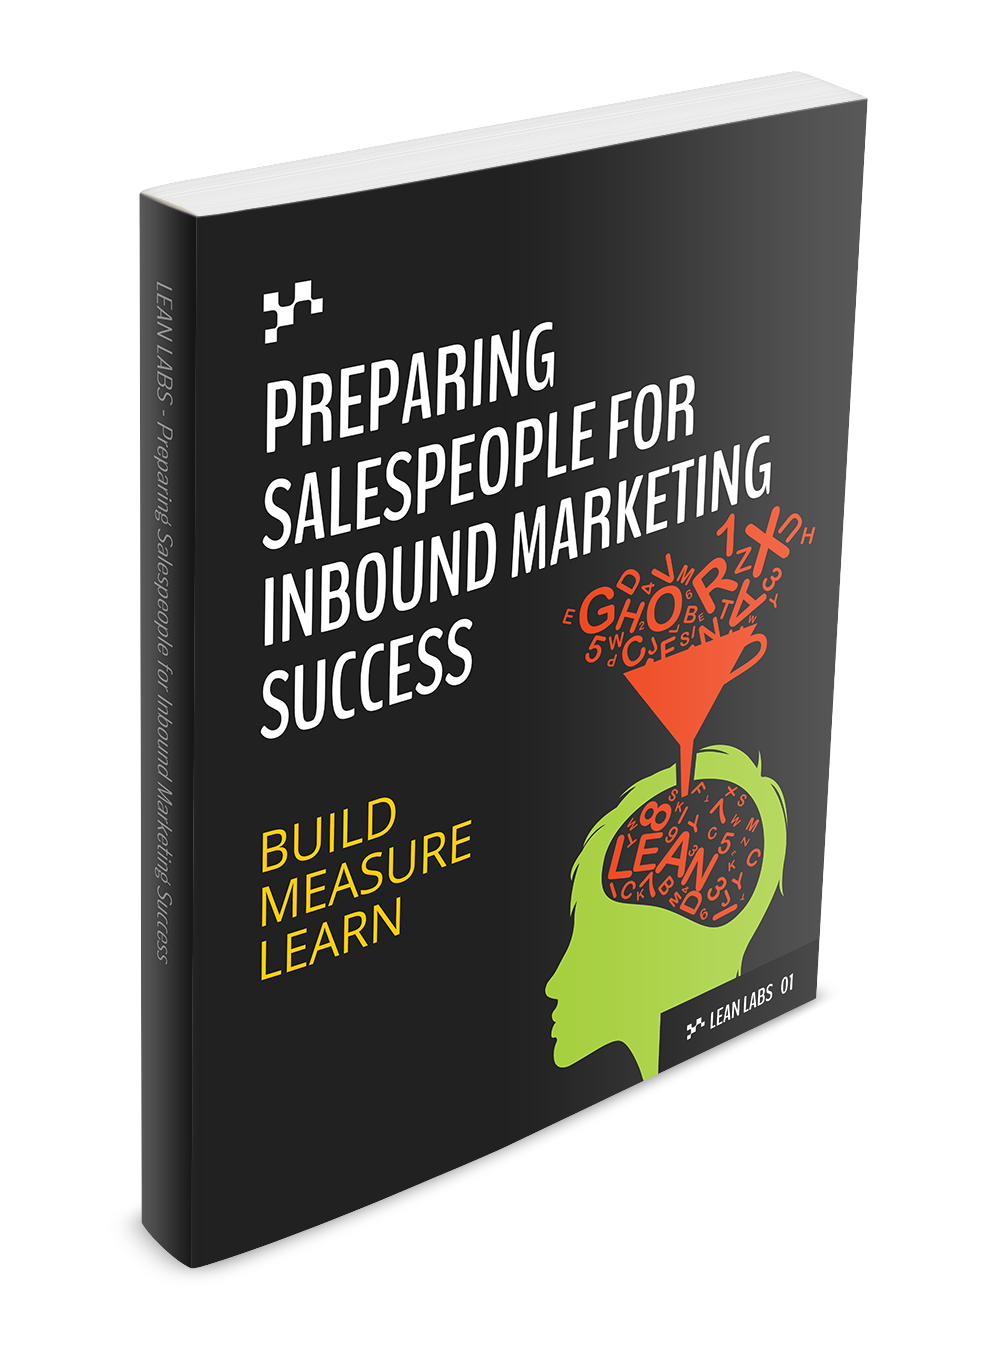 Preparing Salespeople for Inbound Marketing Success